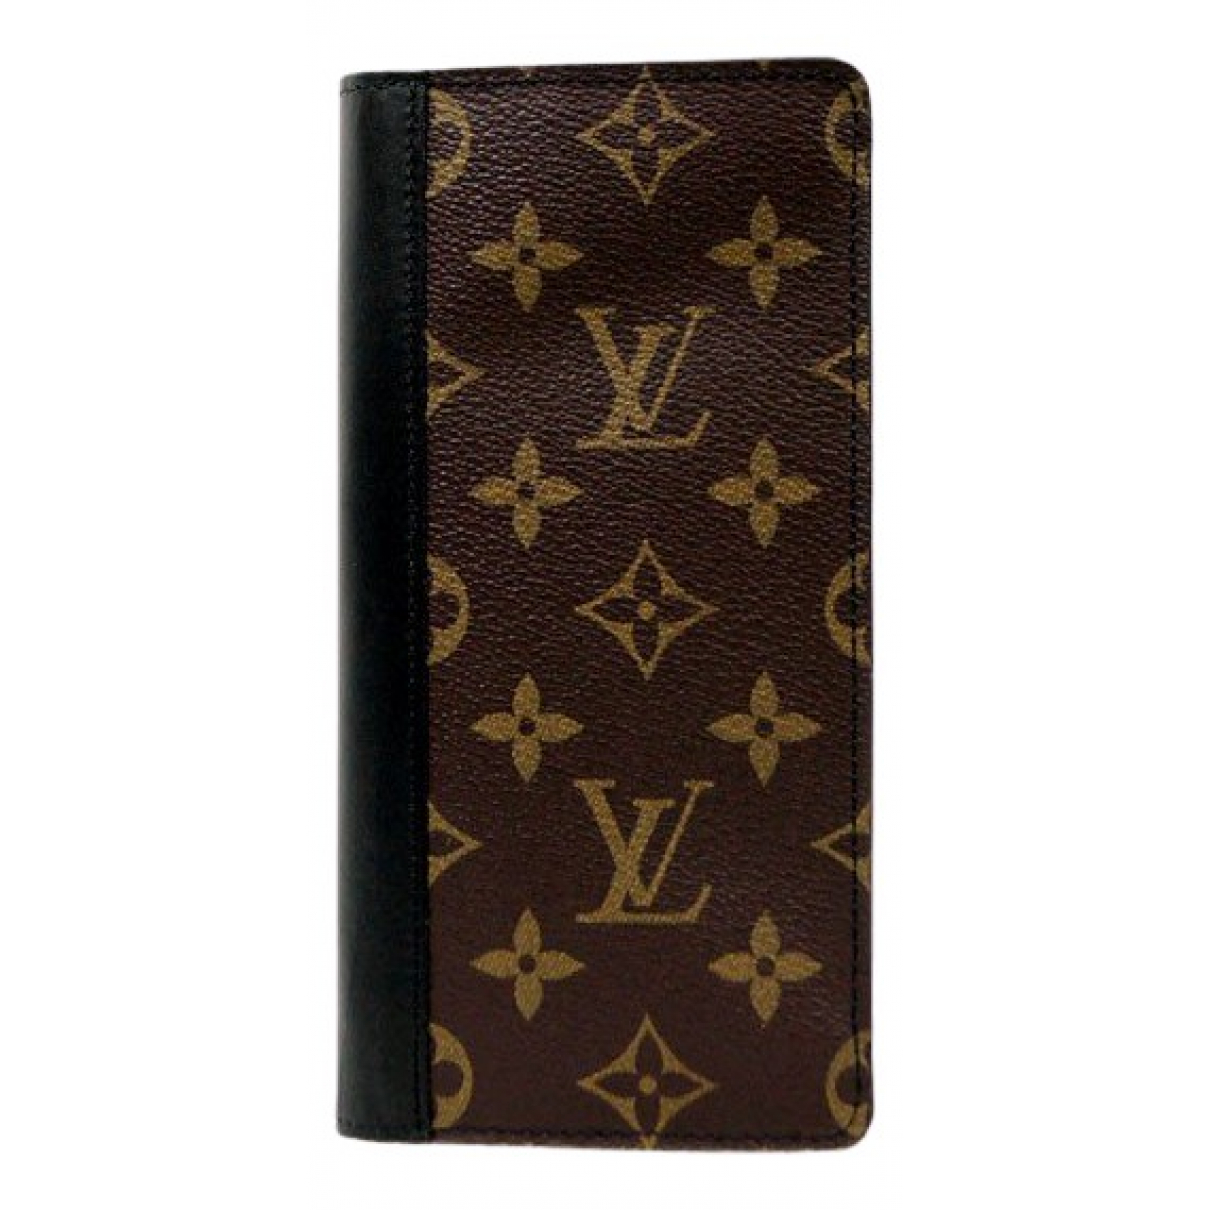 Louis Vuitton Brazza Kleinlederwaren in  Braun Leinen